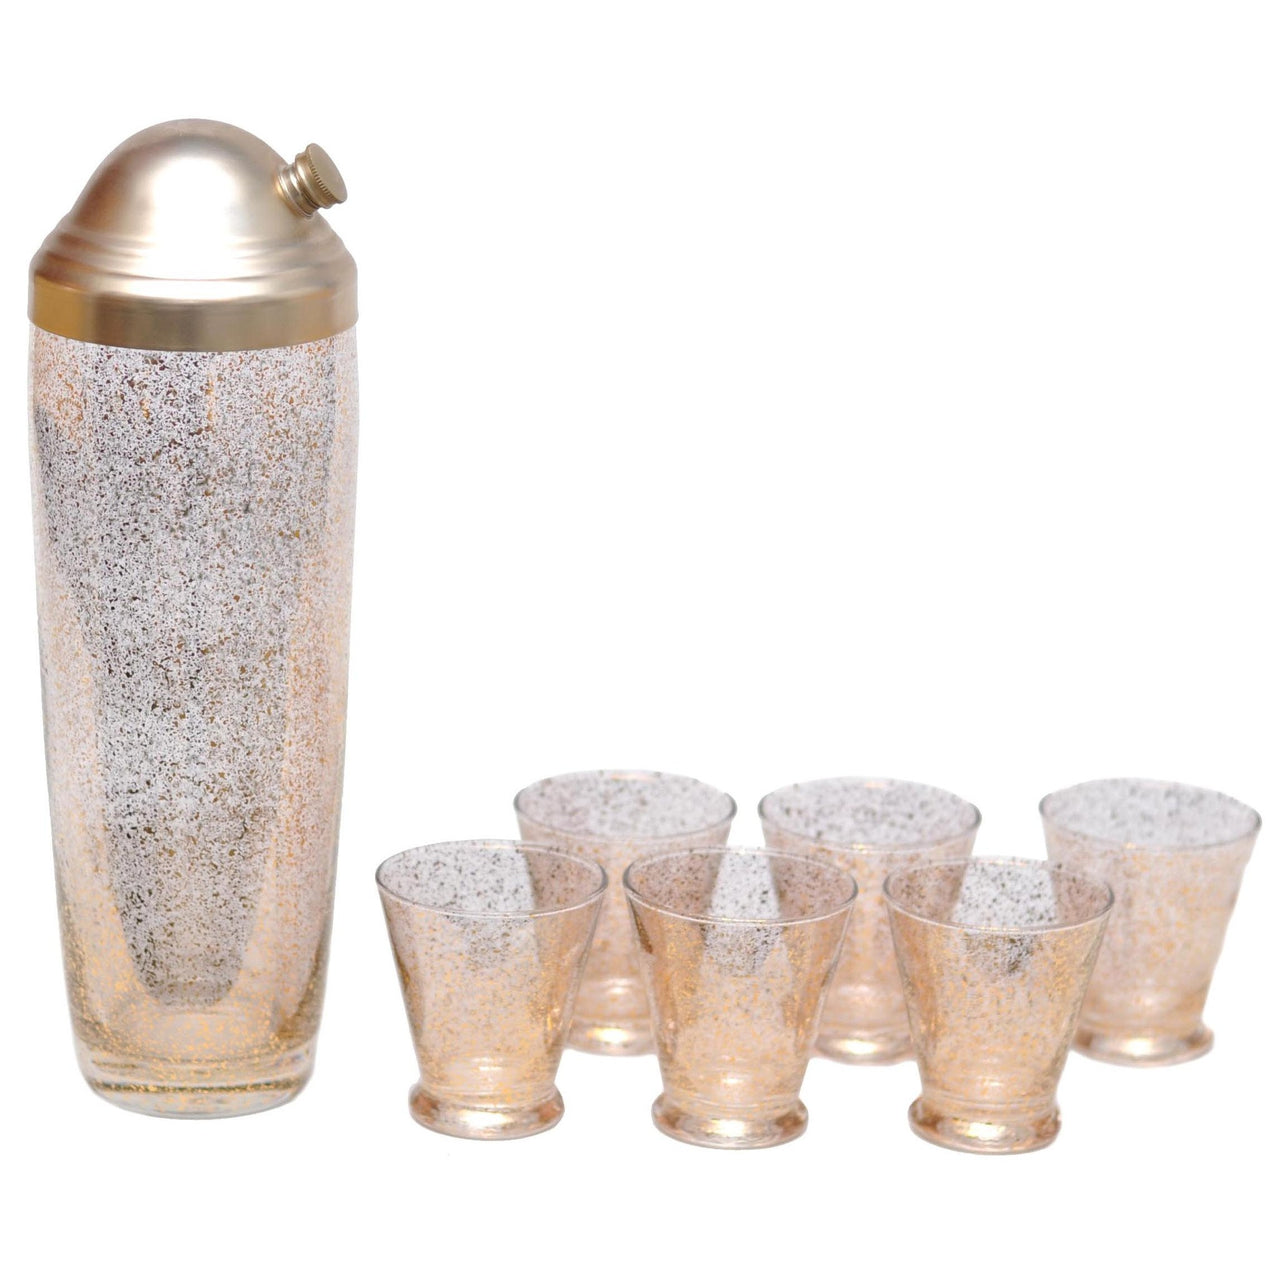 The Hour Shop, Gold Shimmer Shaker Set